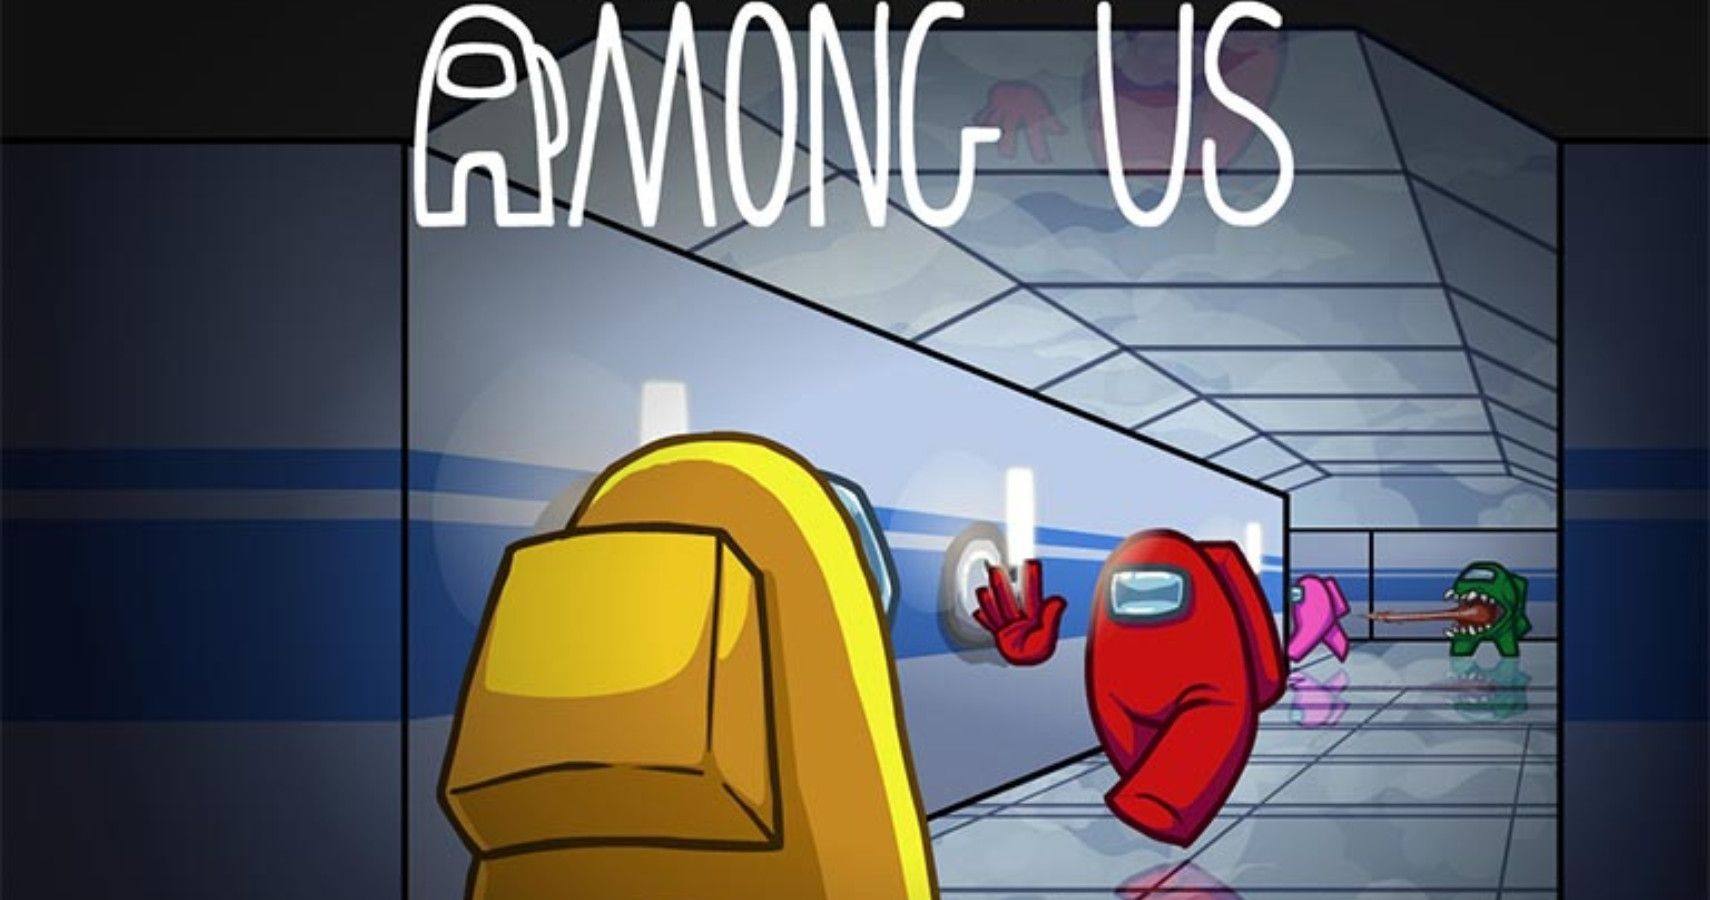 Among Us 2: Everything We Know So Far